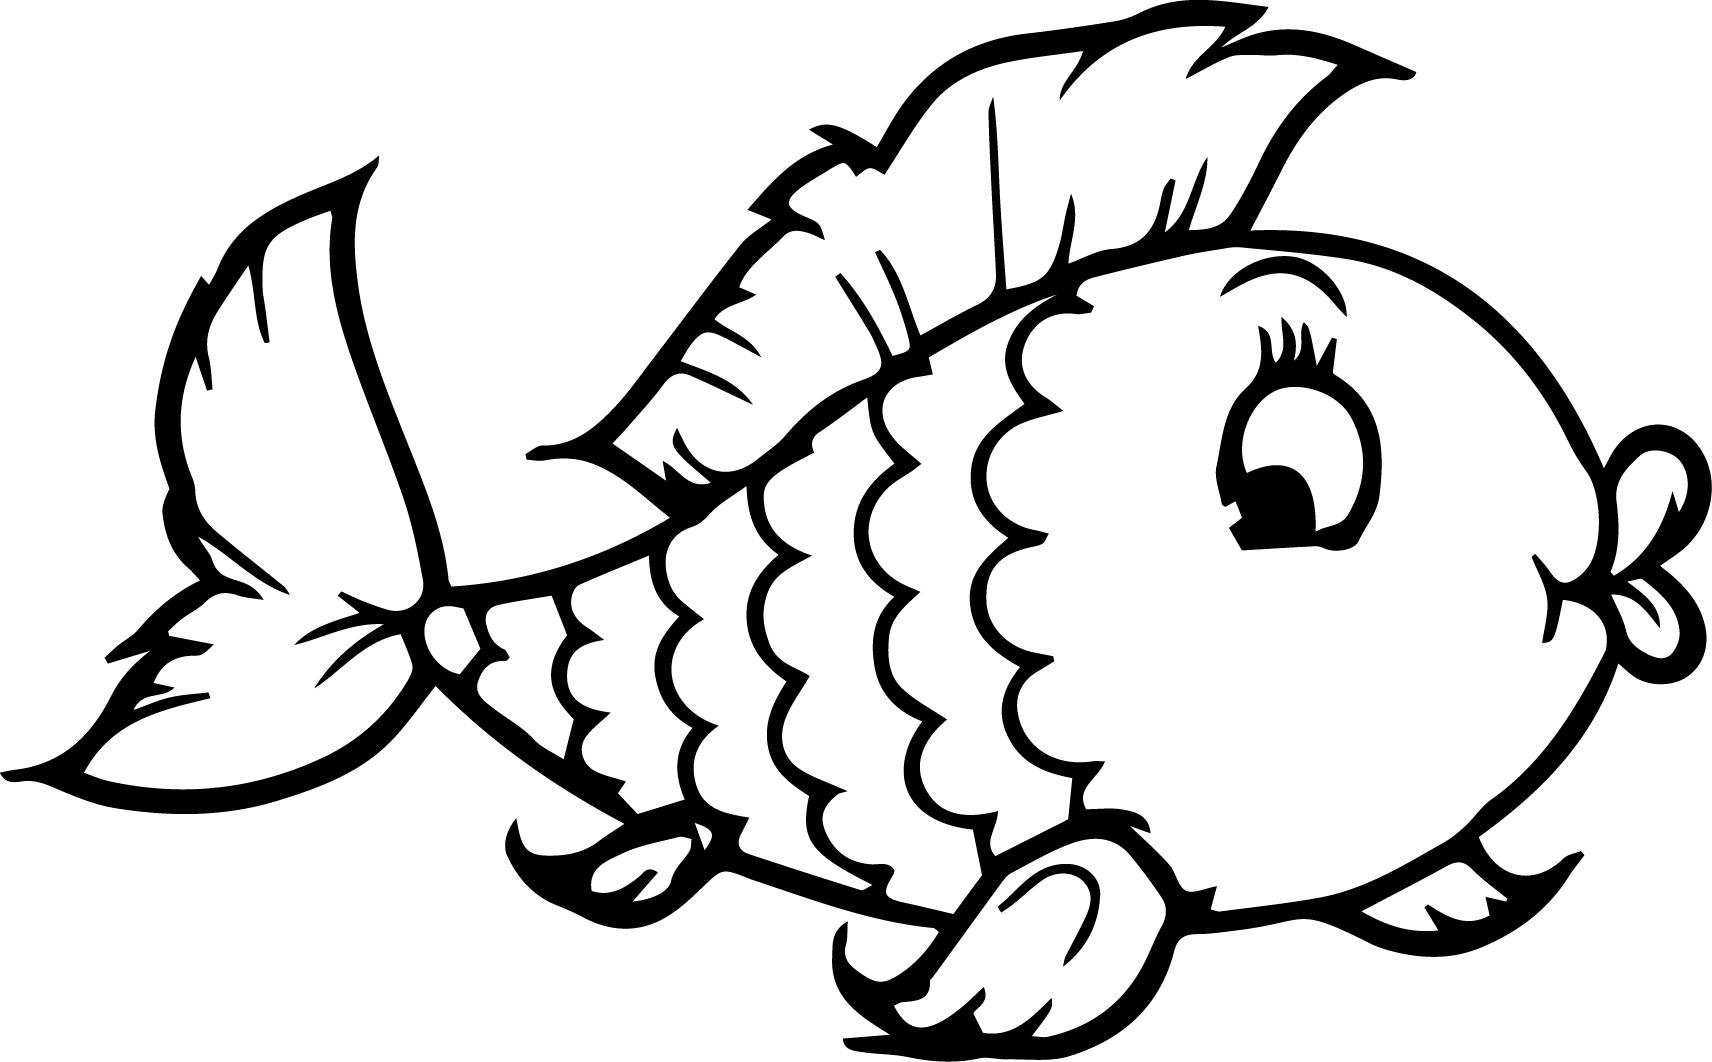 real coloring pages beautiful peacock drawing at getdrawings free download pages coloring real